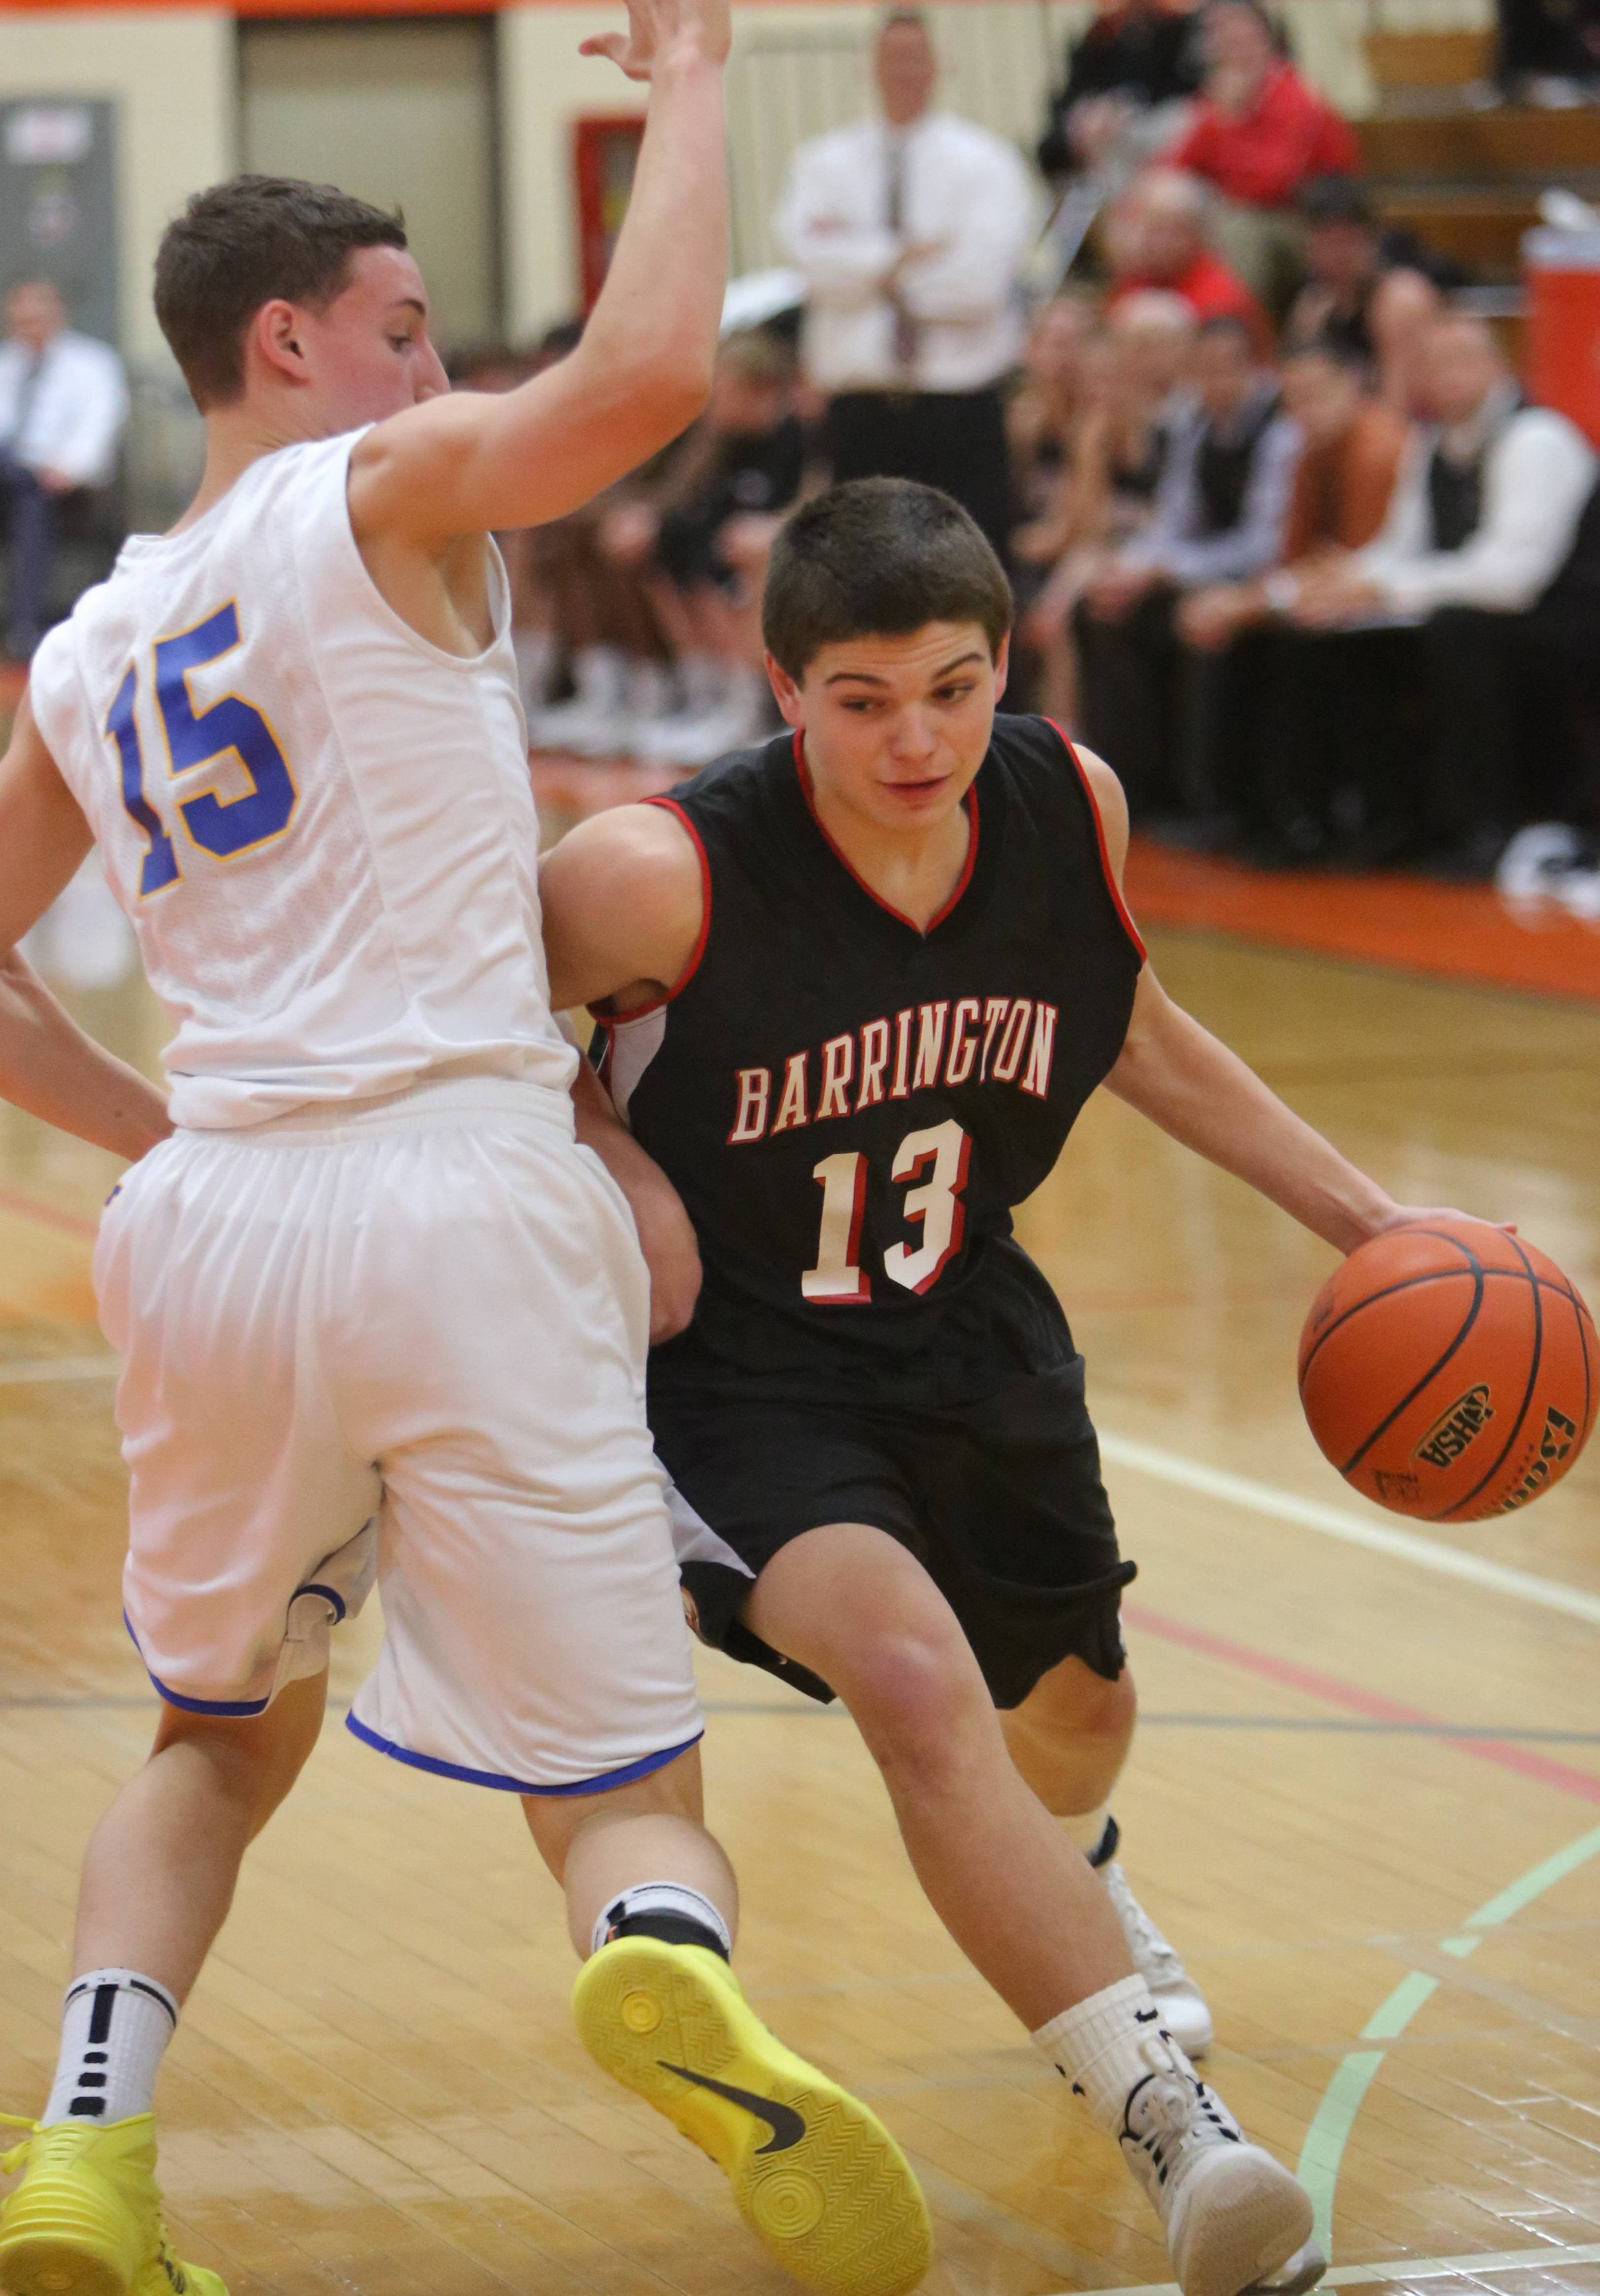 Images from the Barrington vs. Lake Forest regional boys basketball game on Tuesday night